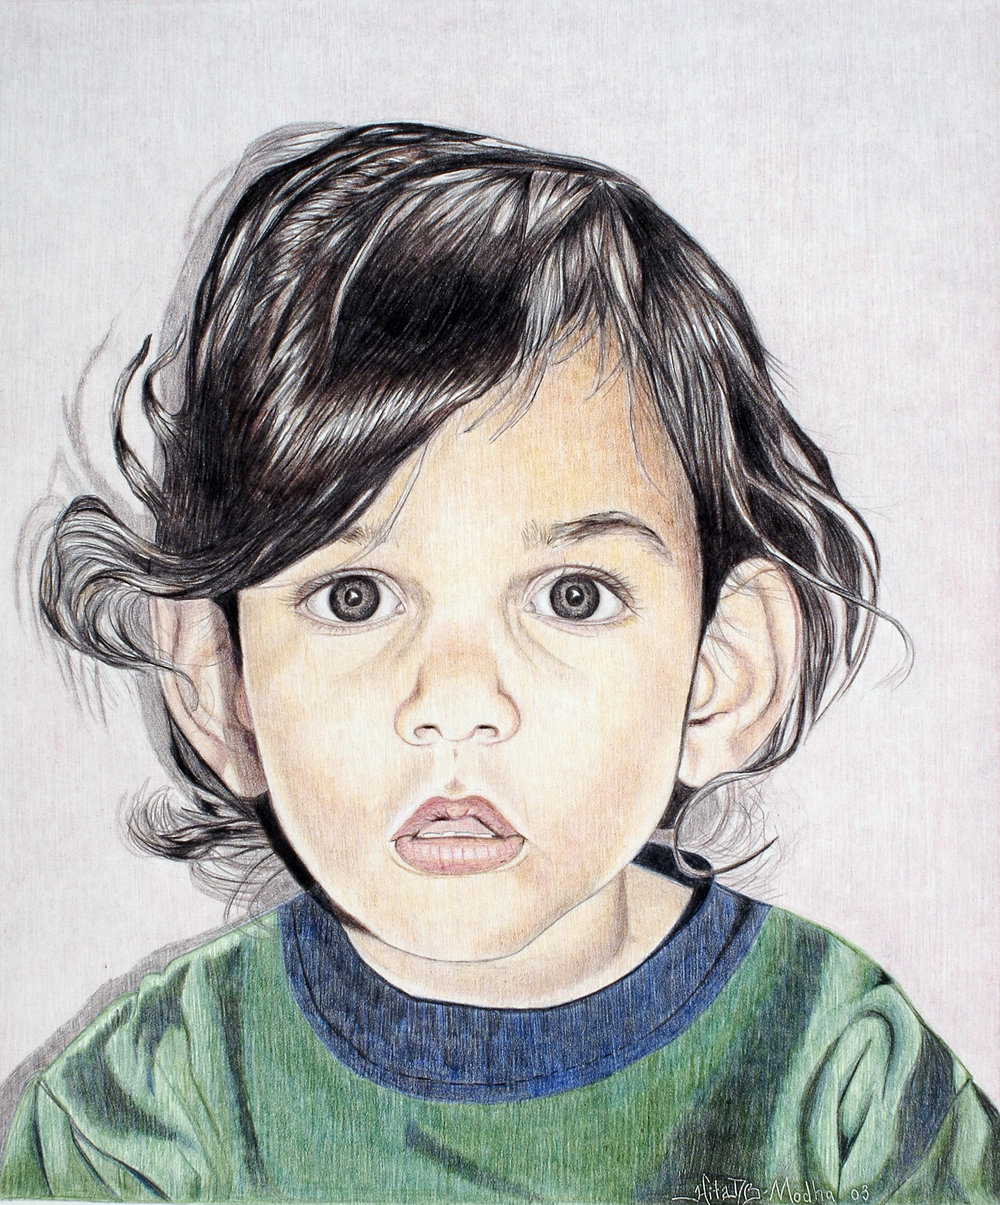 Portrait in colored pencil